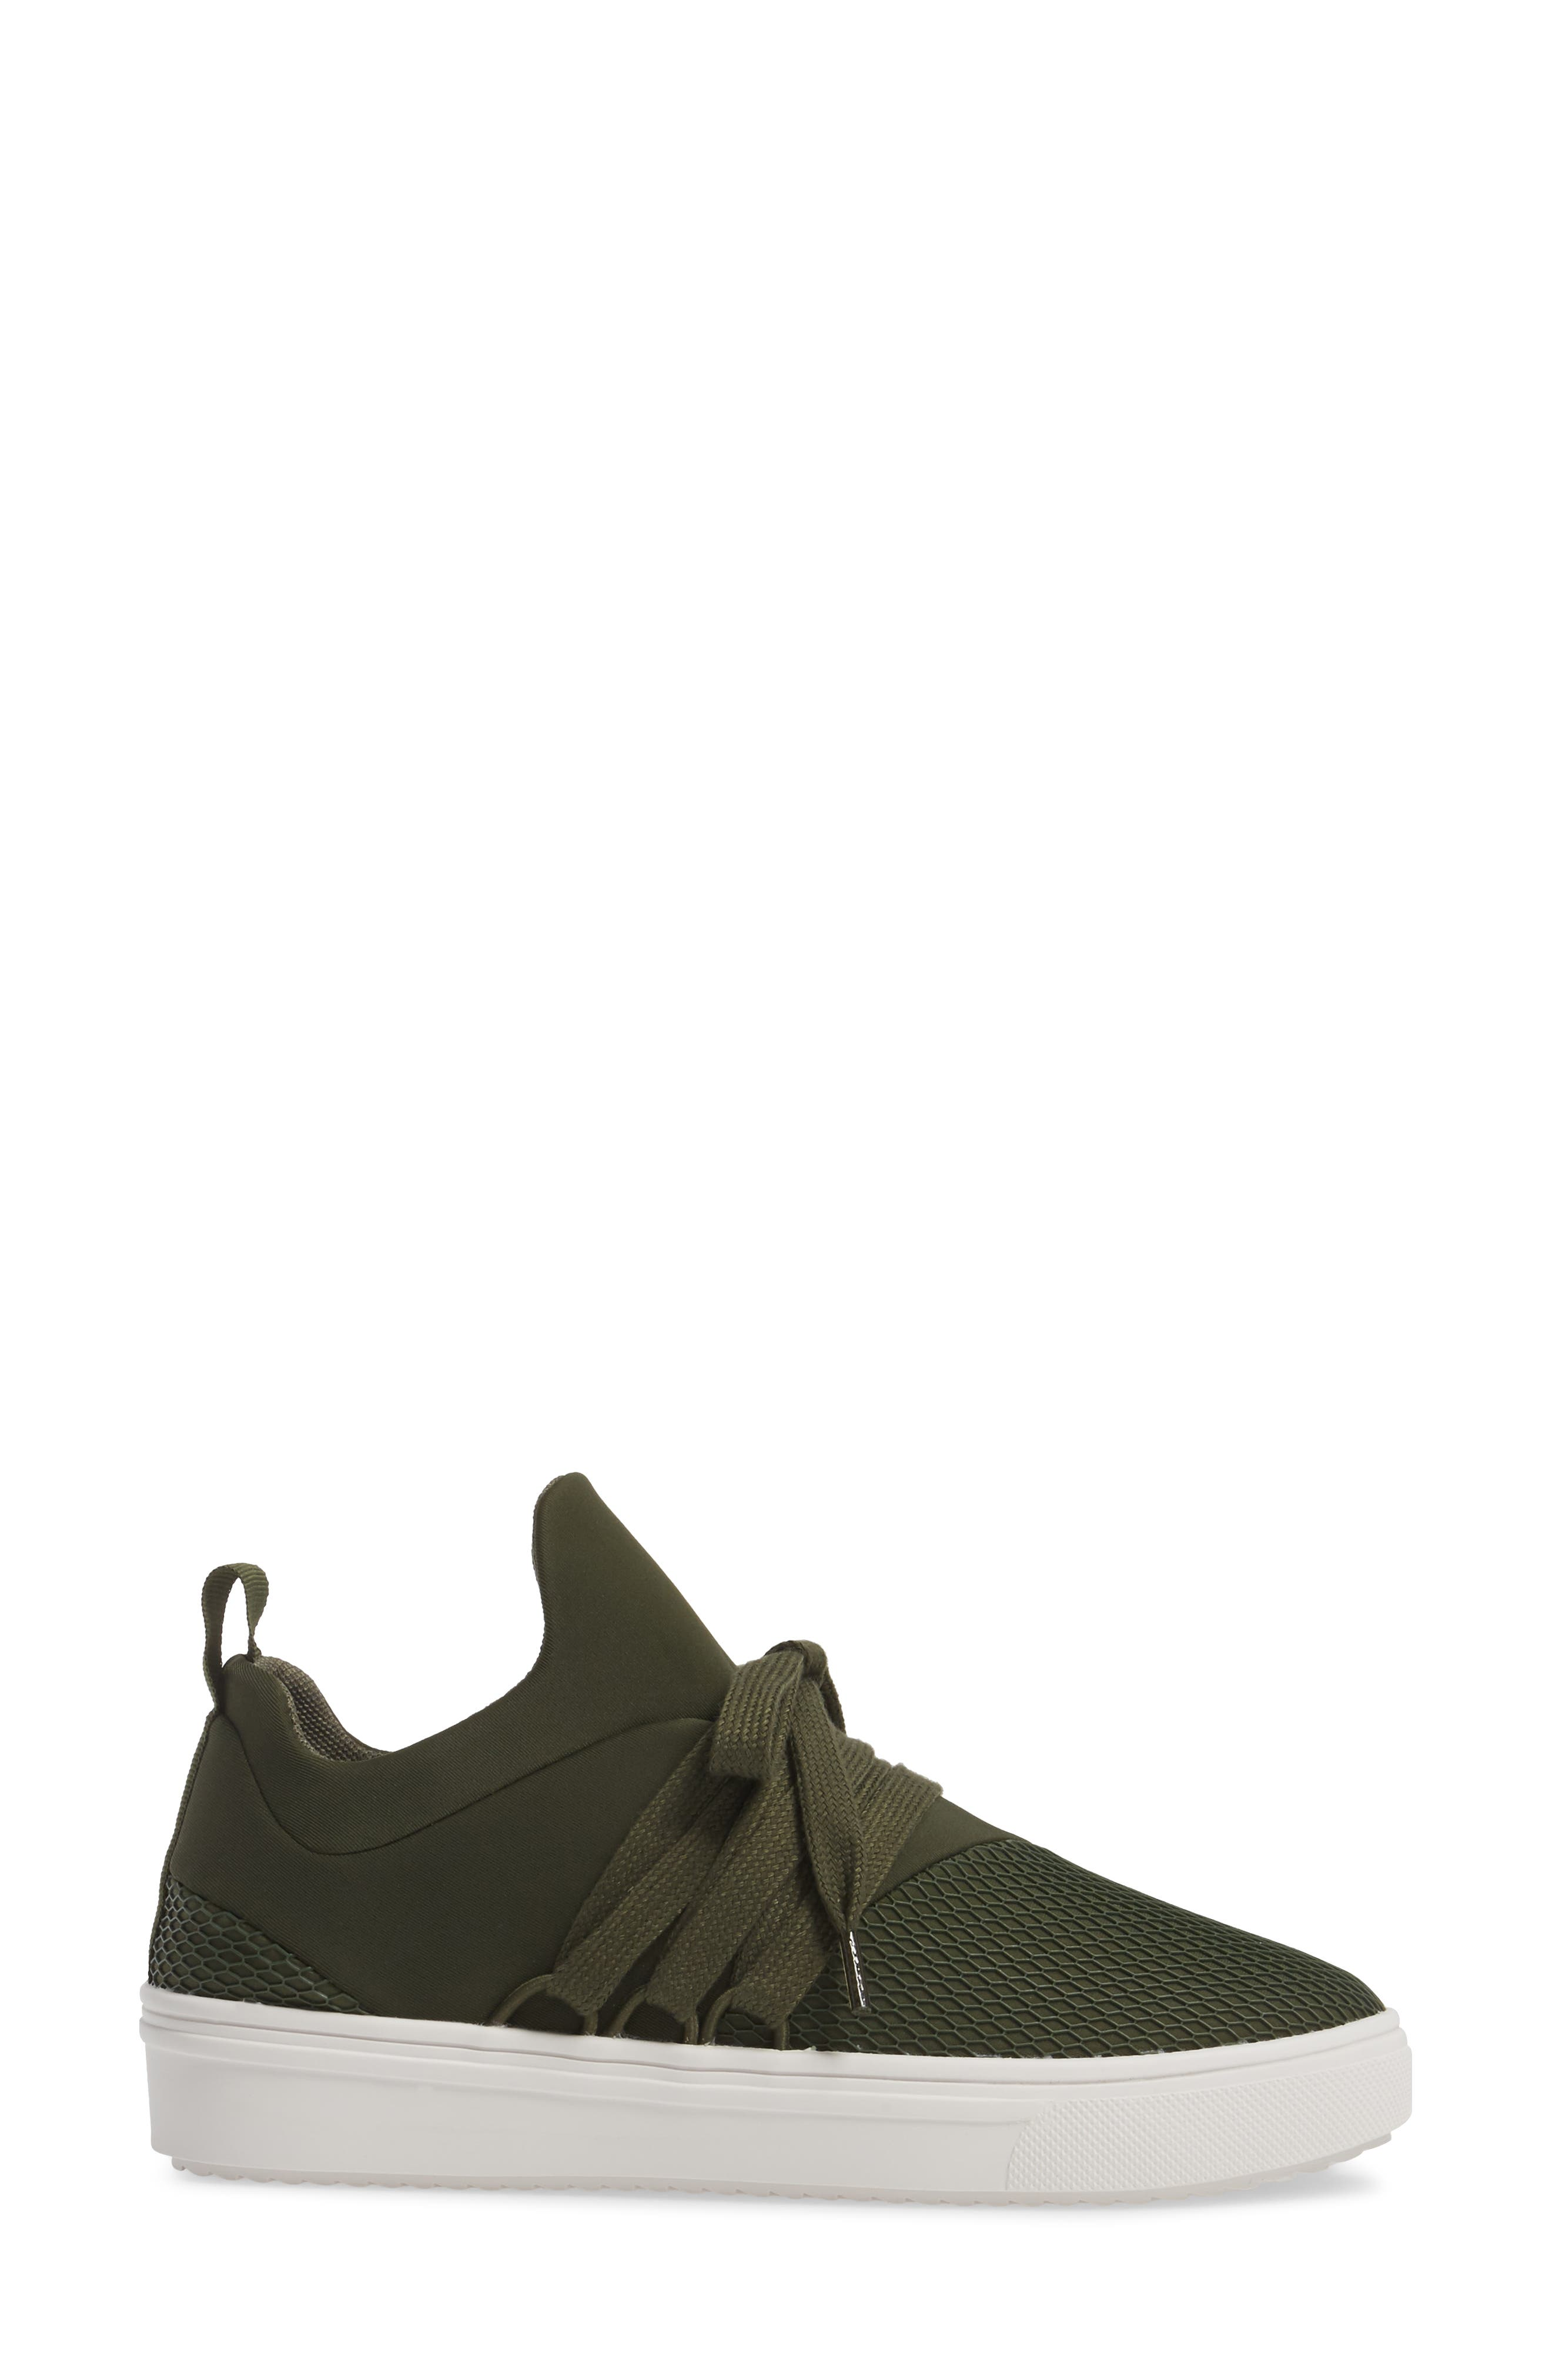 Lancer Sneaker,                             Alternate thumbnail 26, color,